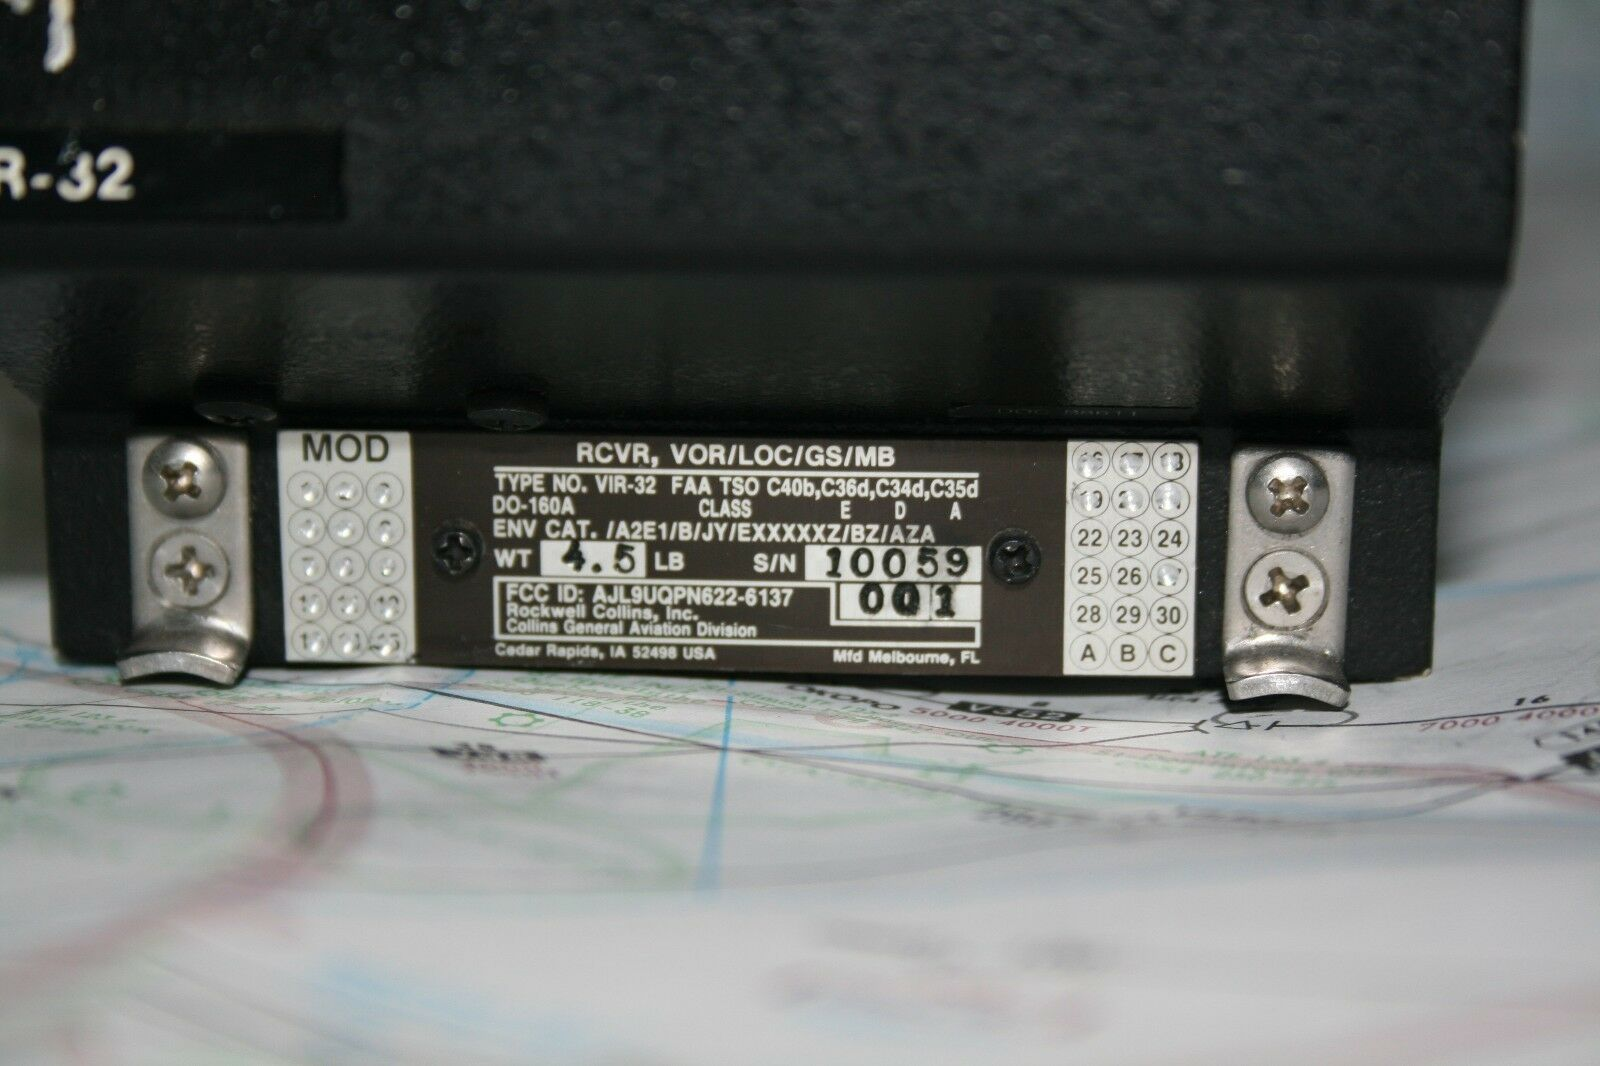 Collins VIR 32 VOR LOC GS MB Receiver P N 622 6137 001